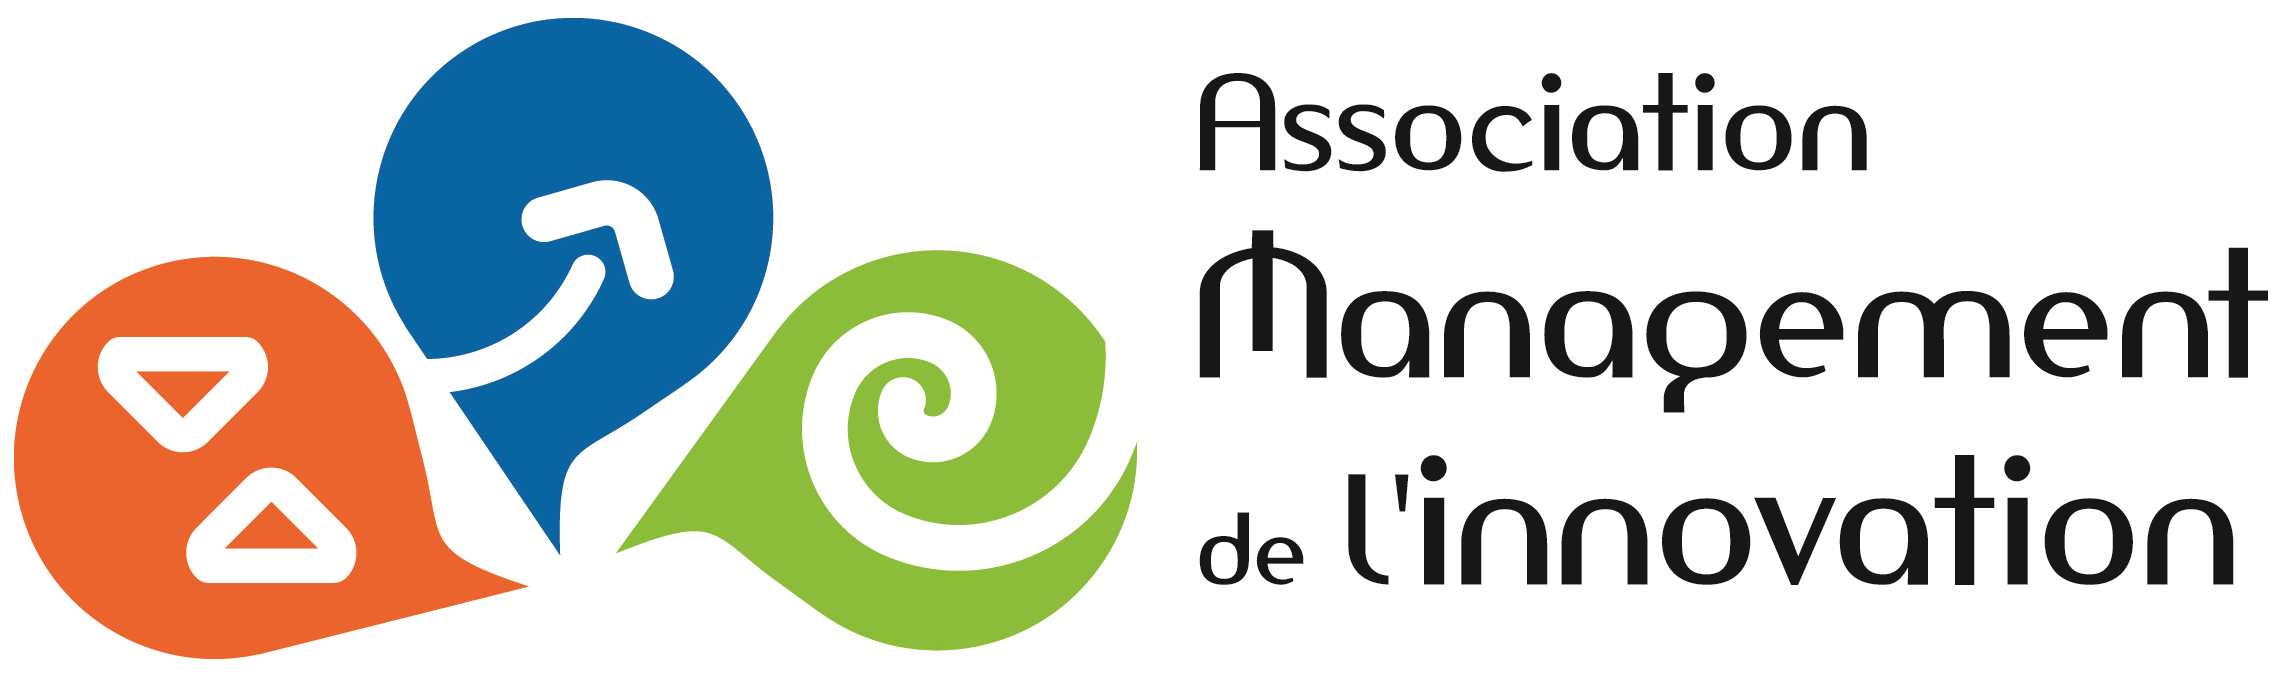 Association pour le Management de l'Innovation